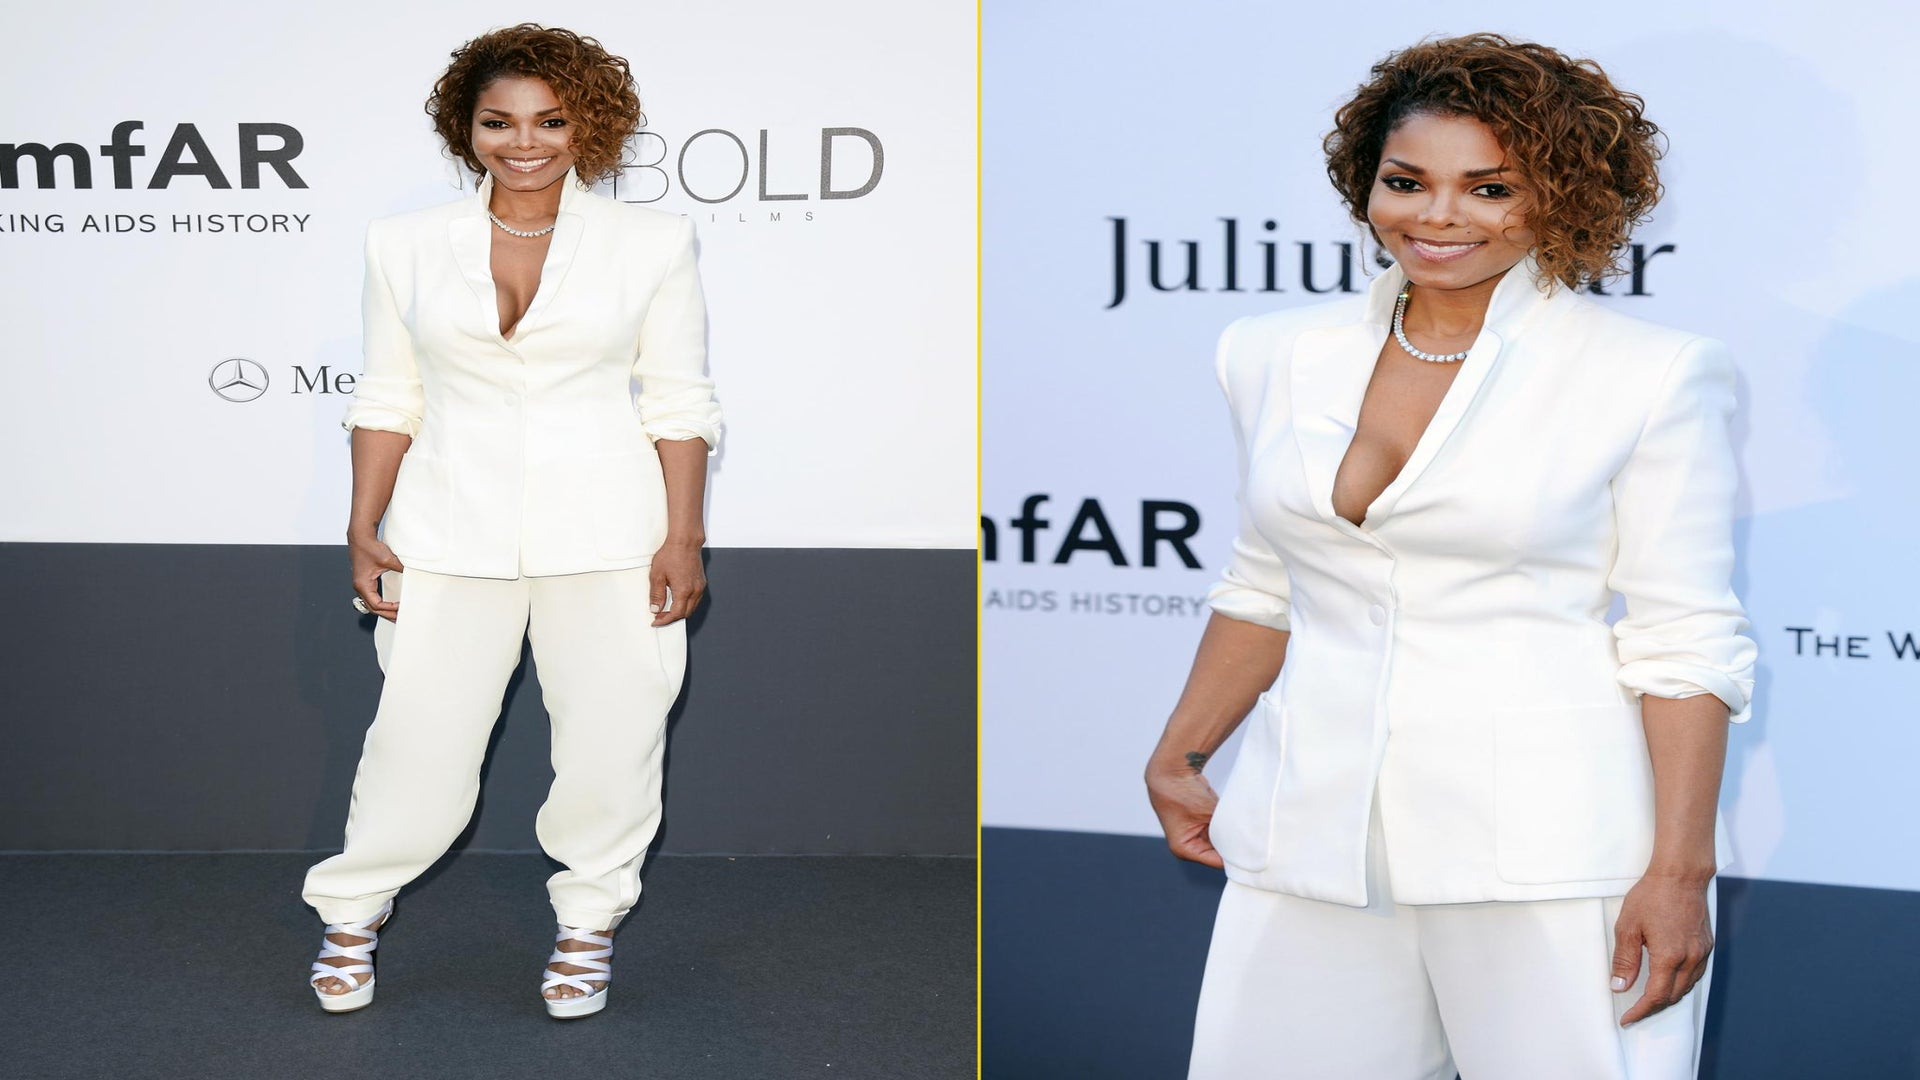 Janet Jackson Accompanies Katherine to MJ Wrongful Death Trial